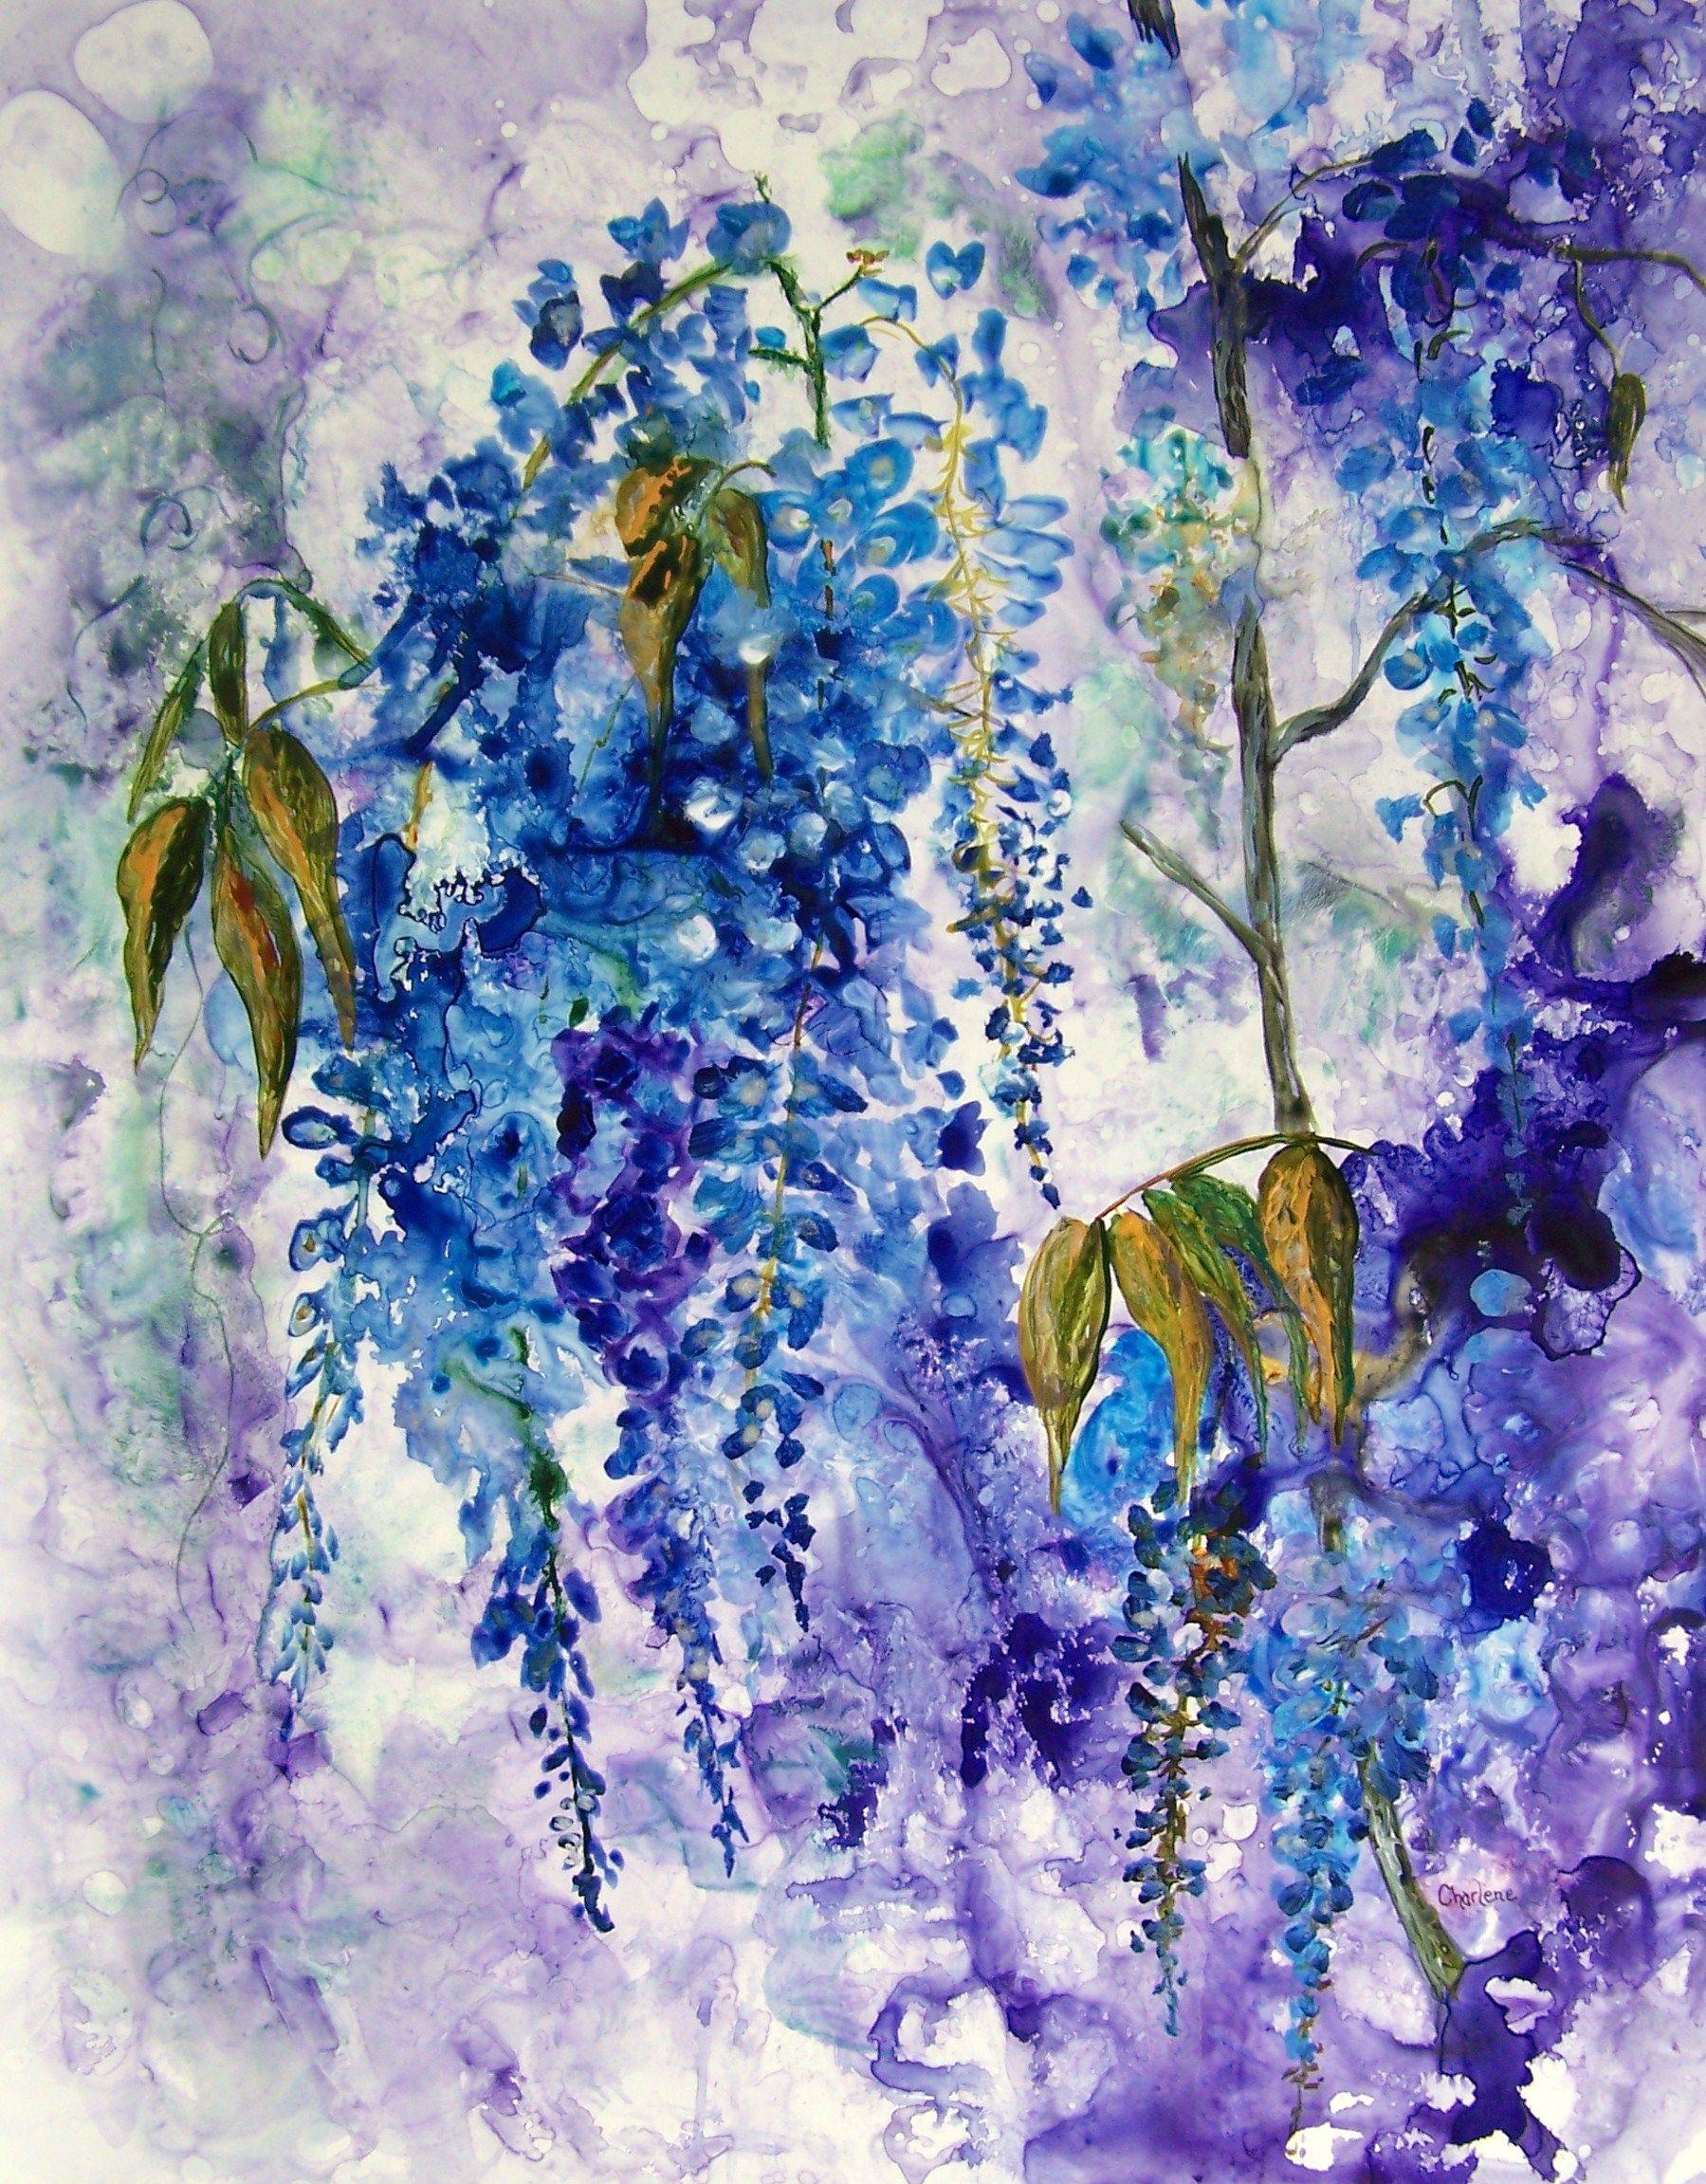 Wisteria Watercolor on yupo paper. It's about 20 x 24. For sale $350.